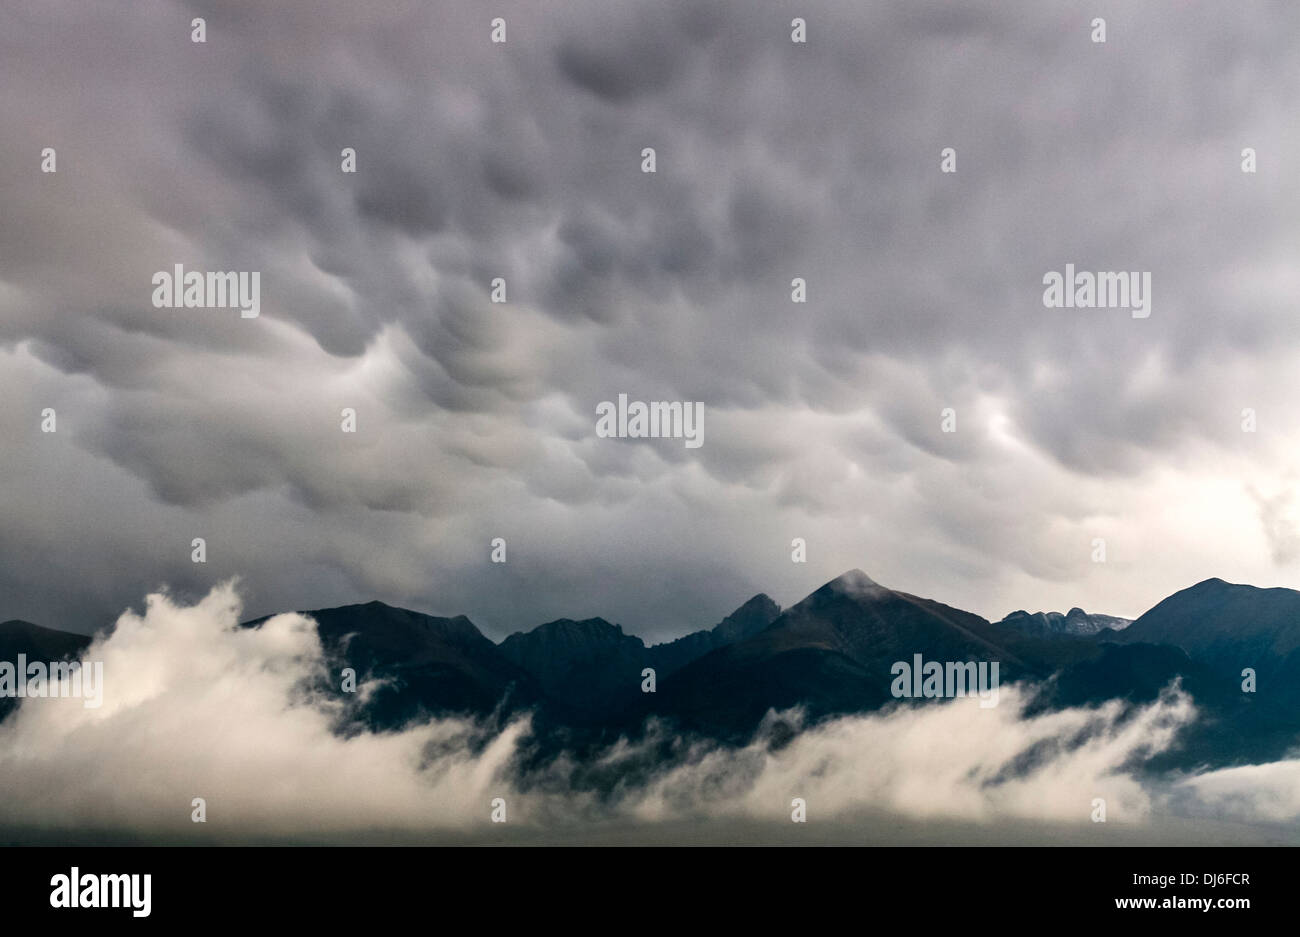 Stormy clouds over the mountains - Stock Image